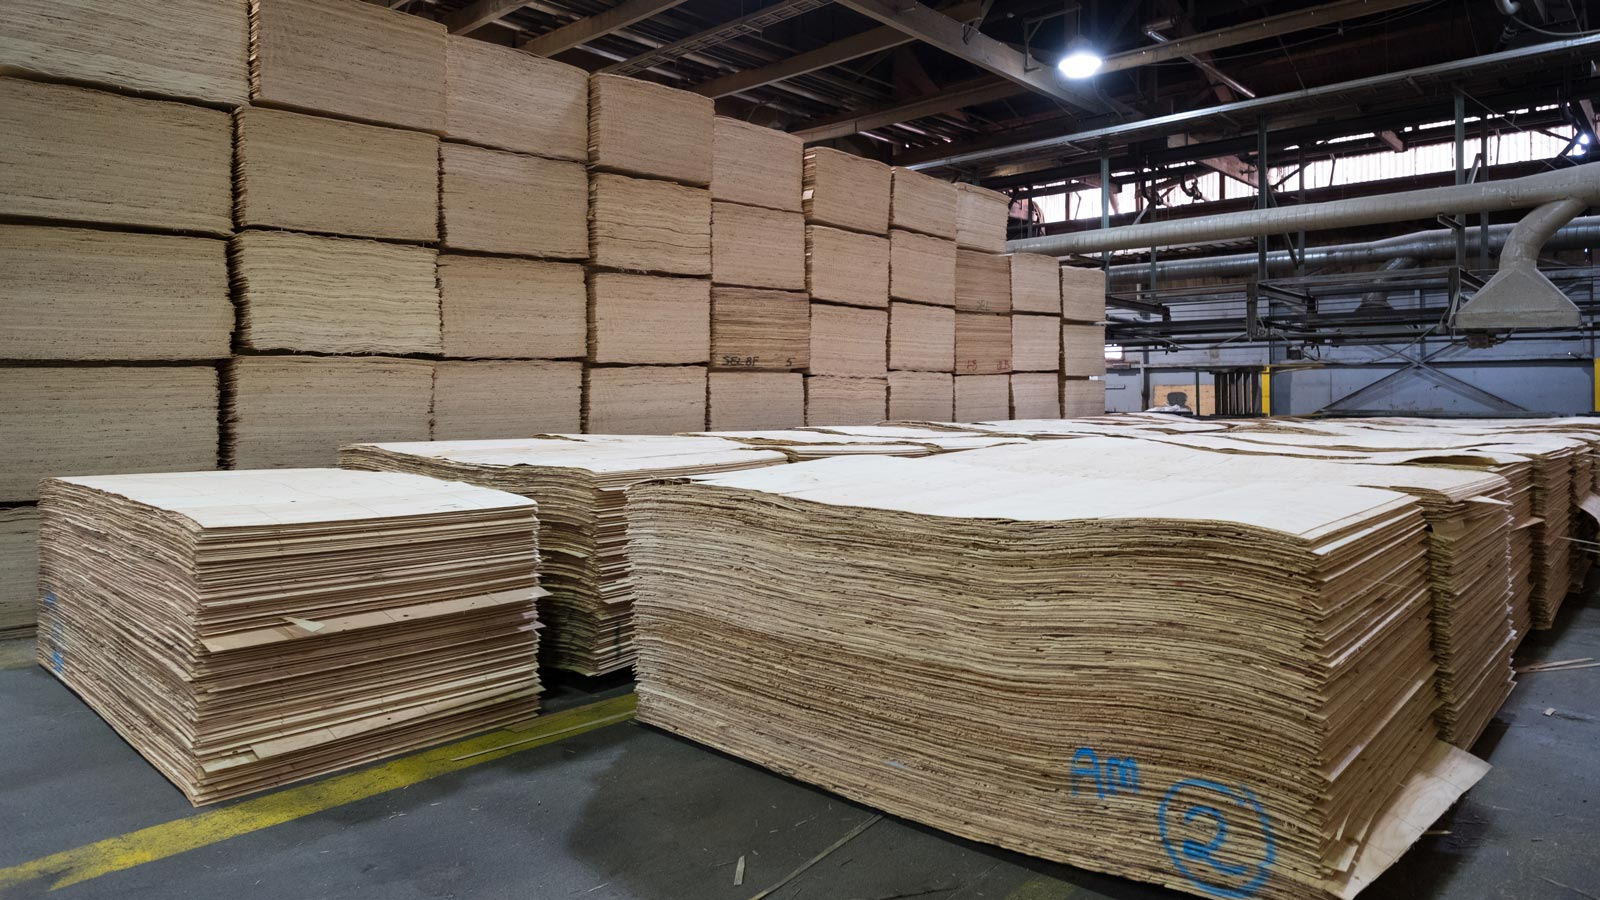 Tolko veneer product stacked at facility